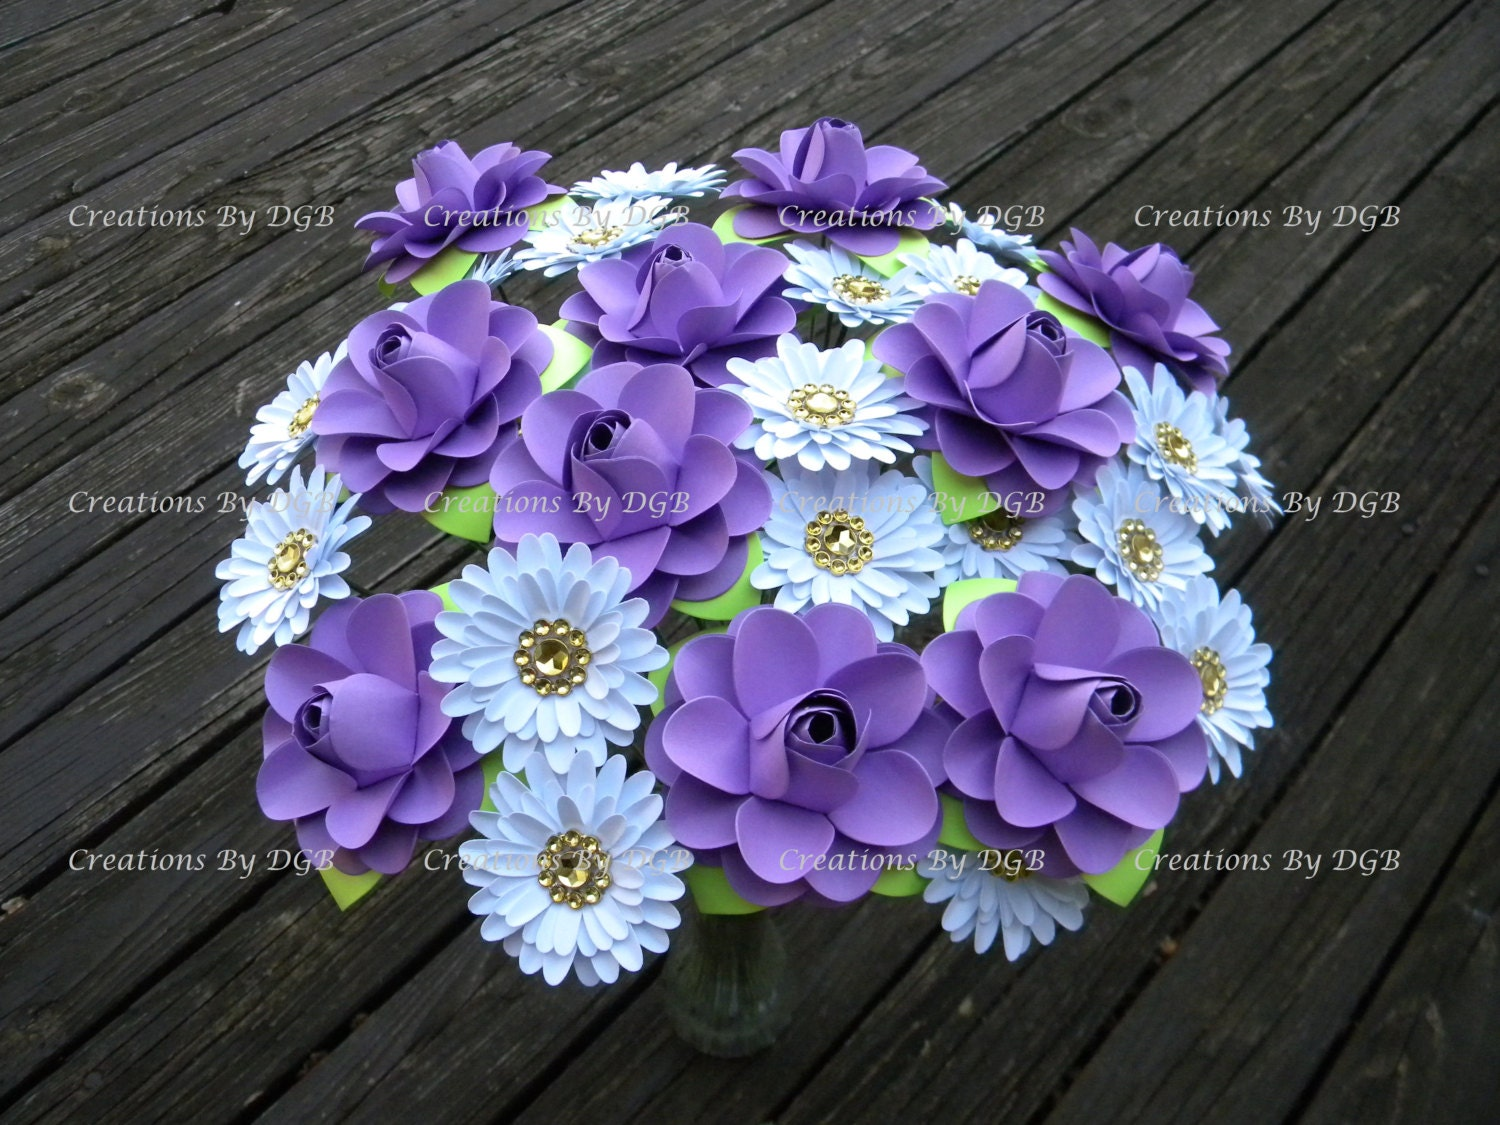 Paper Flowers Mix Lavender And White Flowers Stemmed Made To Order 30 Pcs For Weddings Bouquets Centerpiece